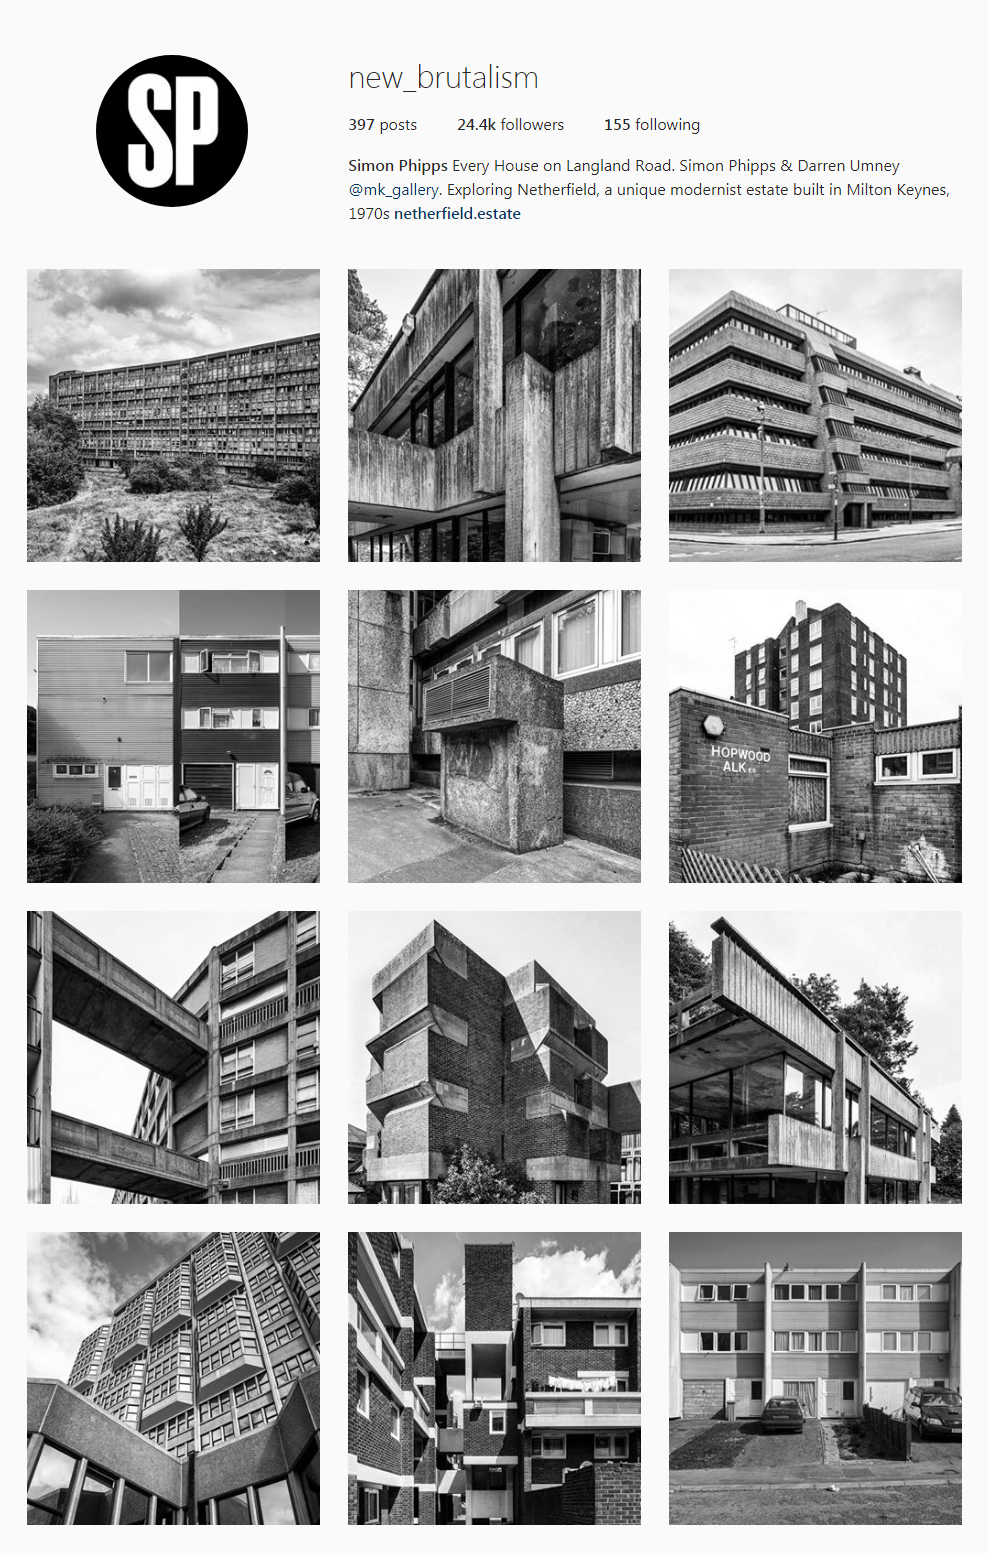 Best Architectural Instagram Feeds of 2017 - new_brutalism